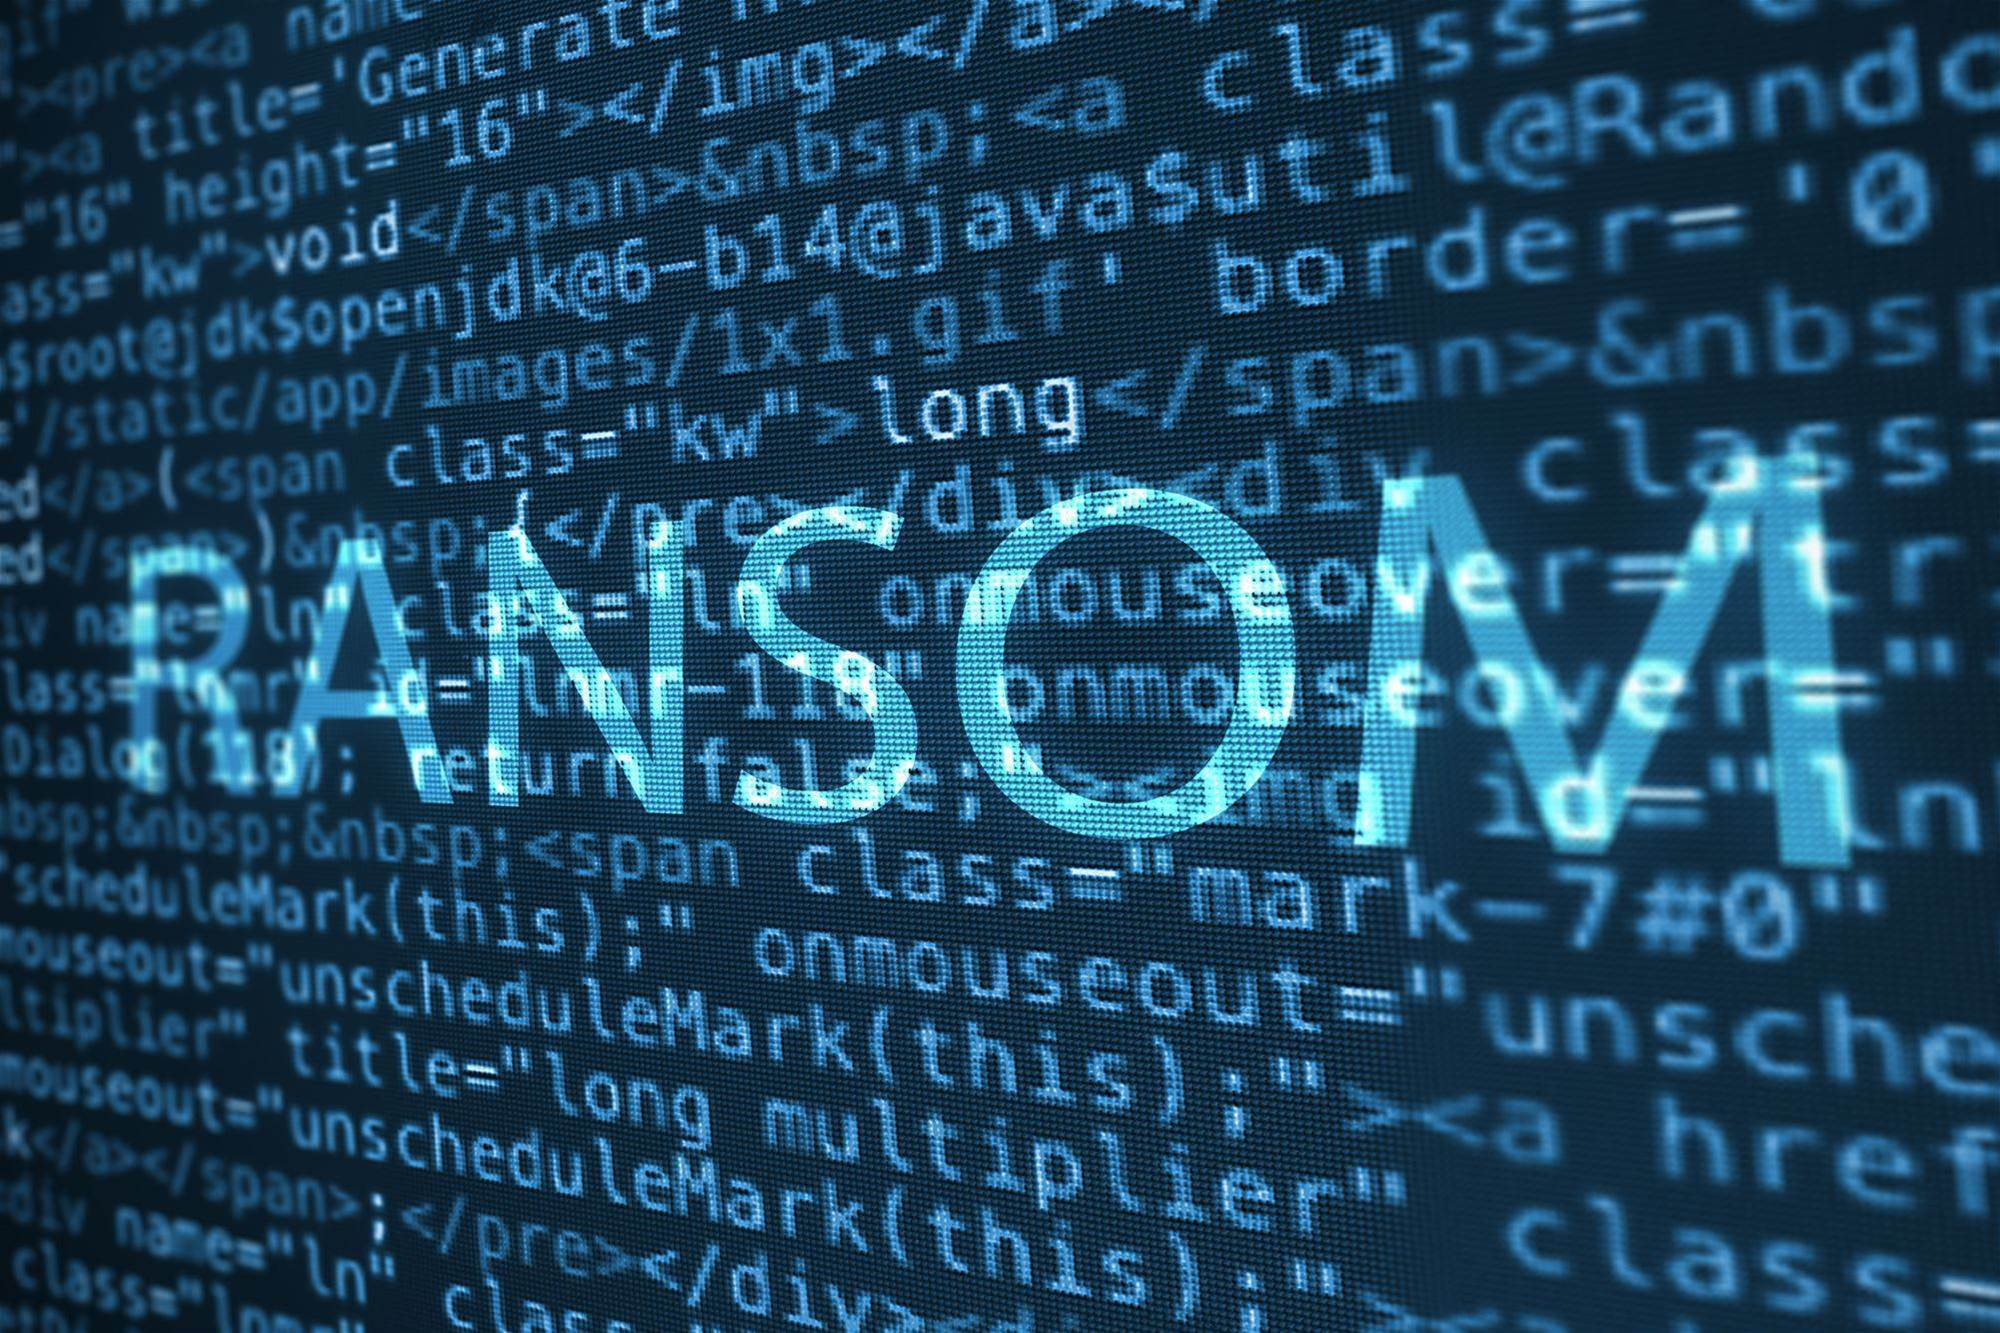 Beware of fake 'ASIC' email carrying ransomware